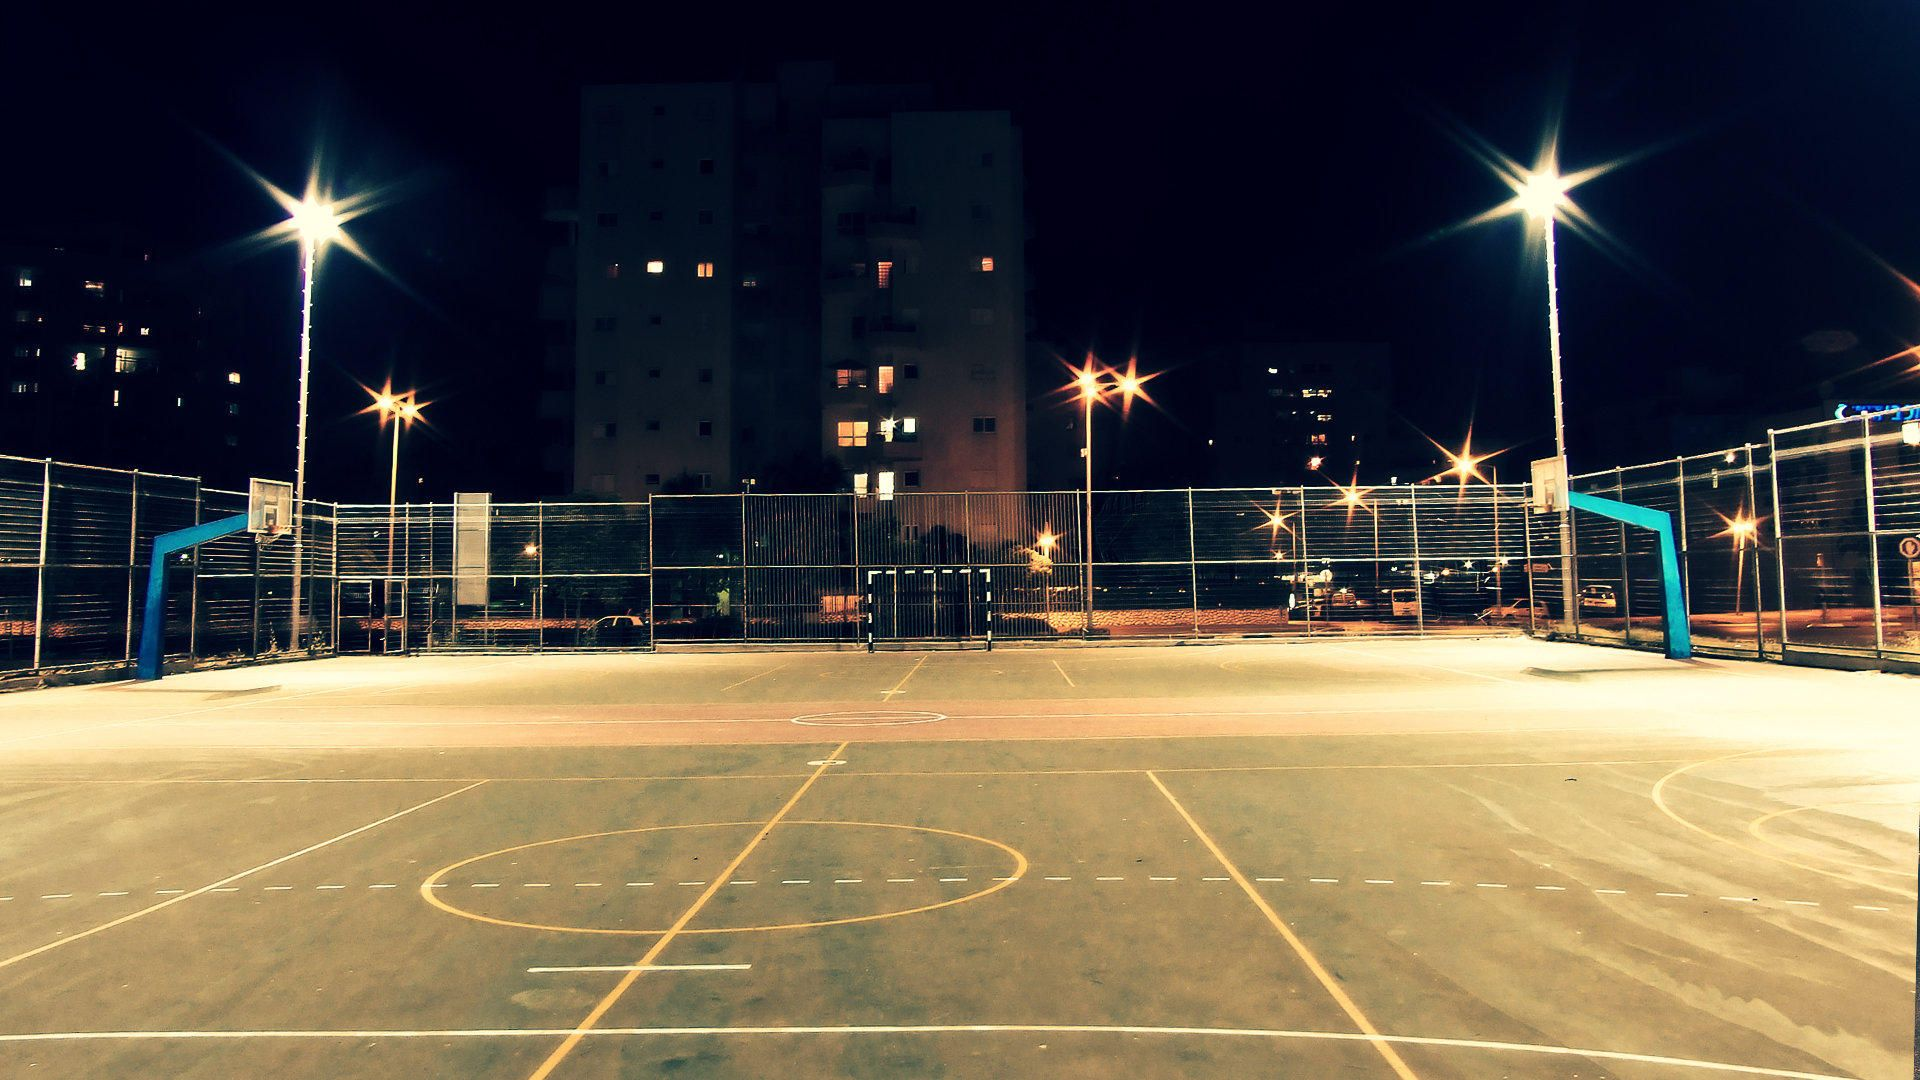 Basketball Court Wallpaper 2014 Hd Basketball Wallpapers Hd Basketball Wallpaper Fantasy Basketball